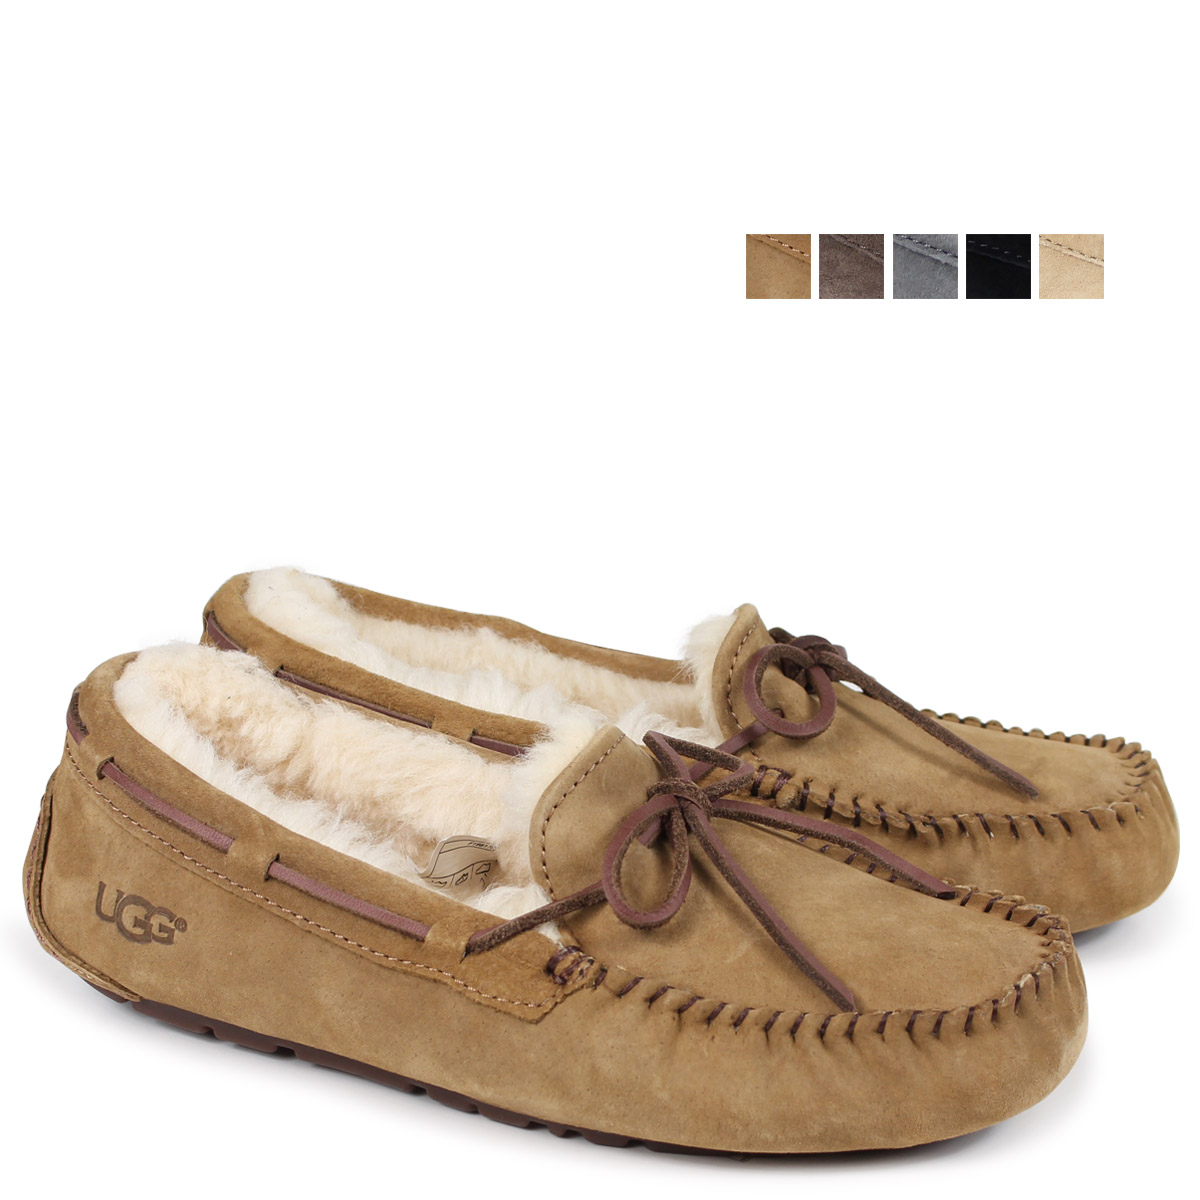 usa cheap sale various styles meet Goods Lab: UGG WOMENS DAKOTA アグモカシンダコタレディースムートン ...